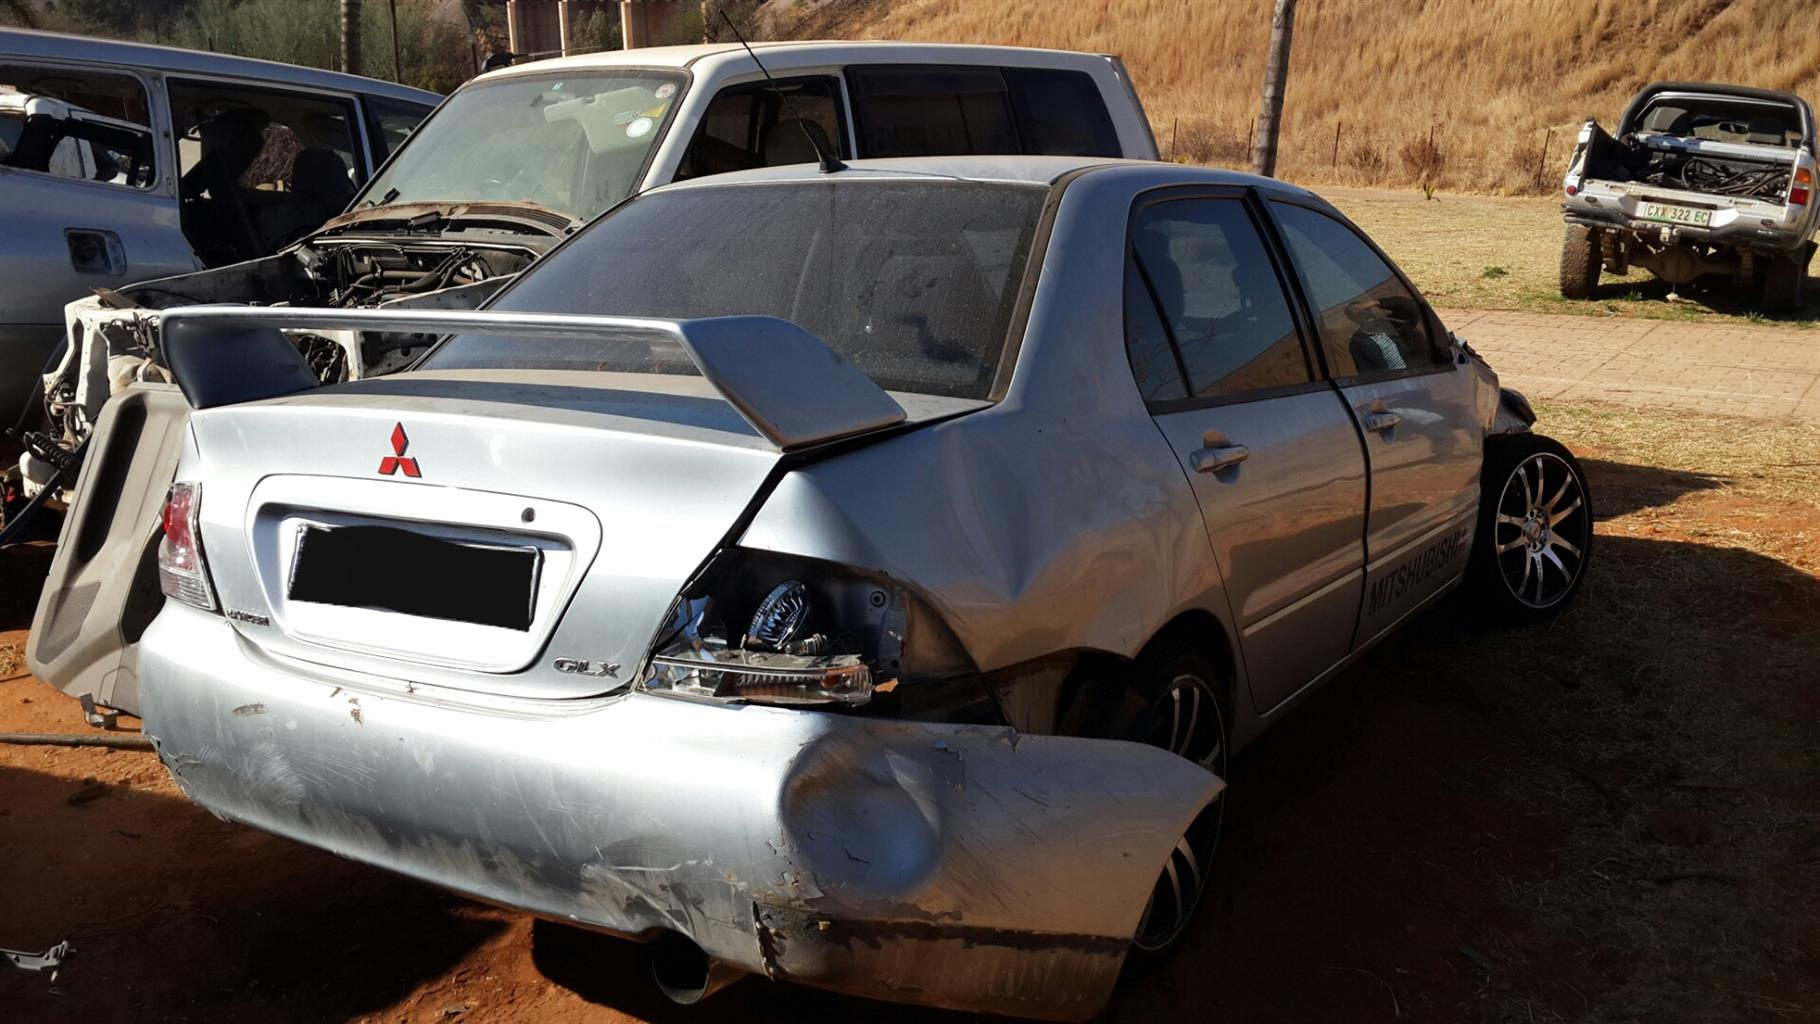 Mitsubishi Lancer 1.6 (2004 model) for stripping